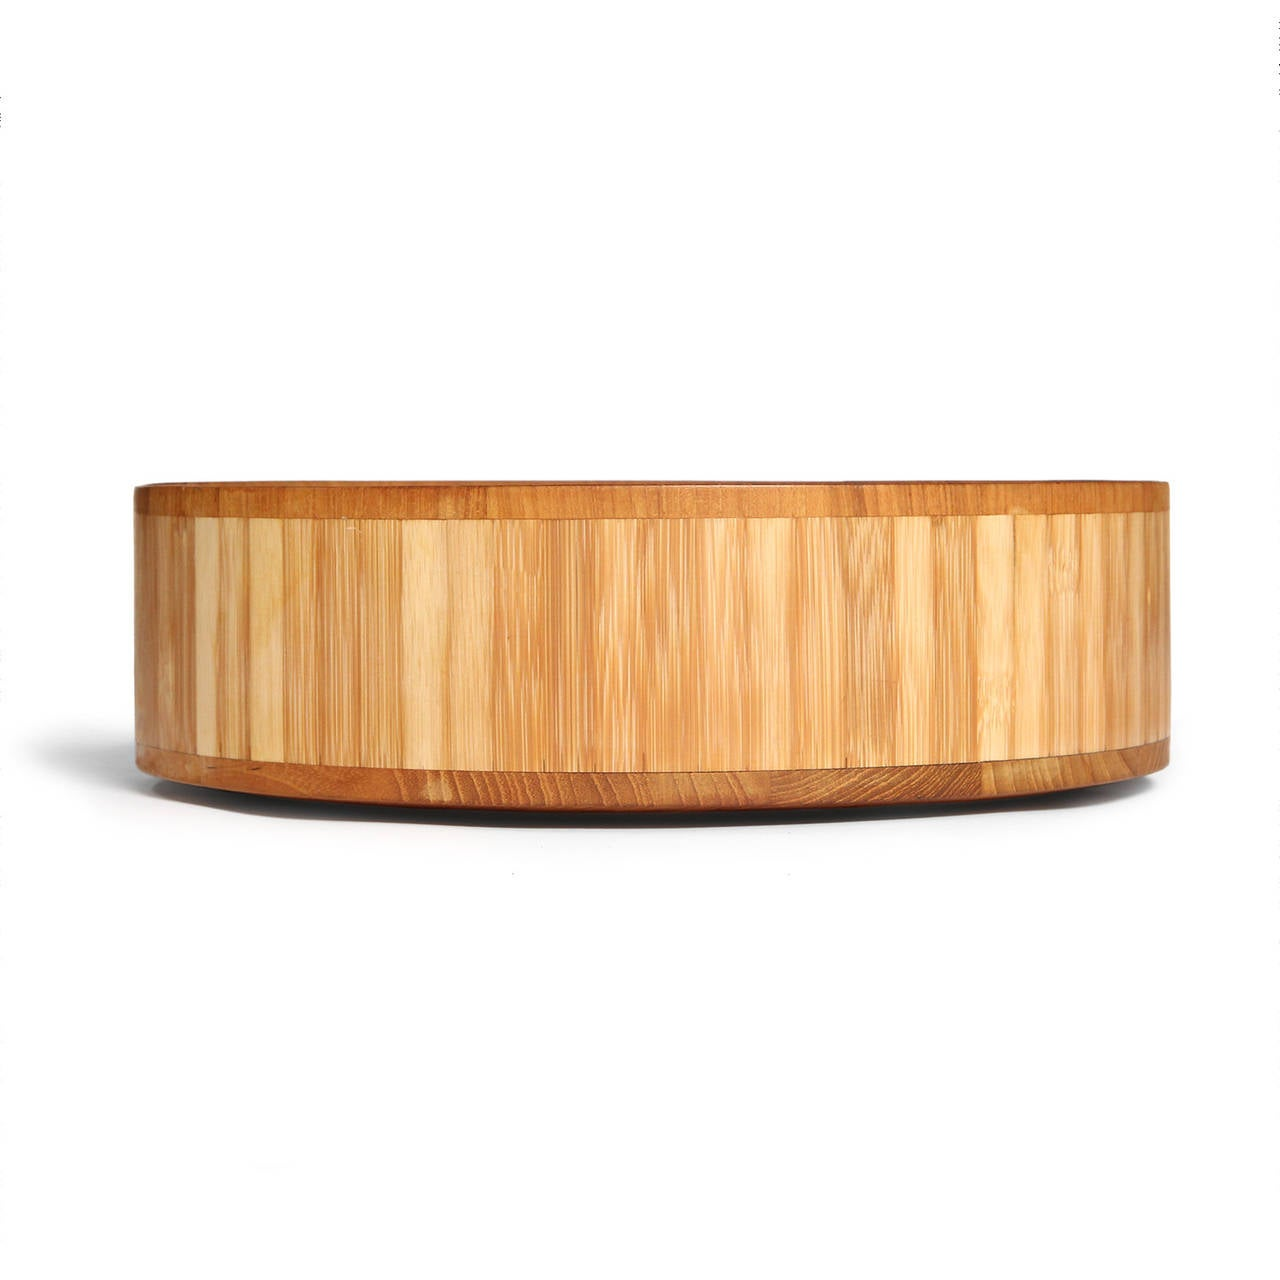 A beautifully crafted, well scaled and rare staved teak serving bowl encircled by vertical slats of pale bamboo.